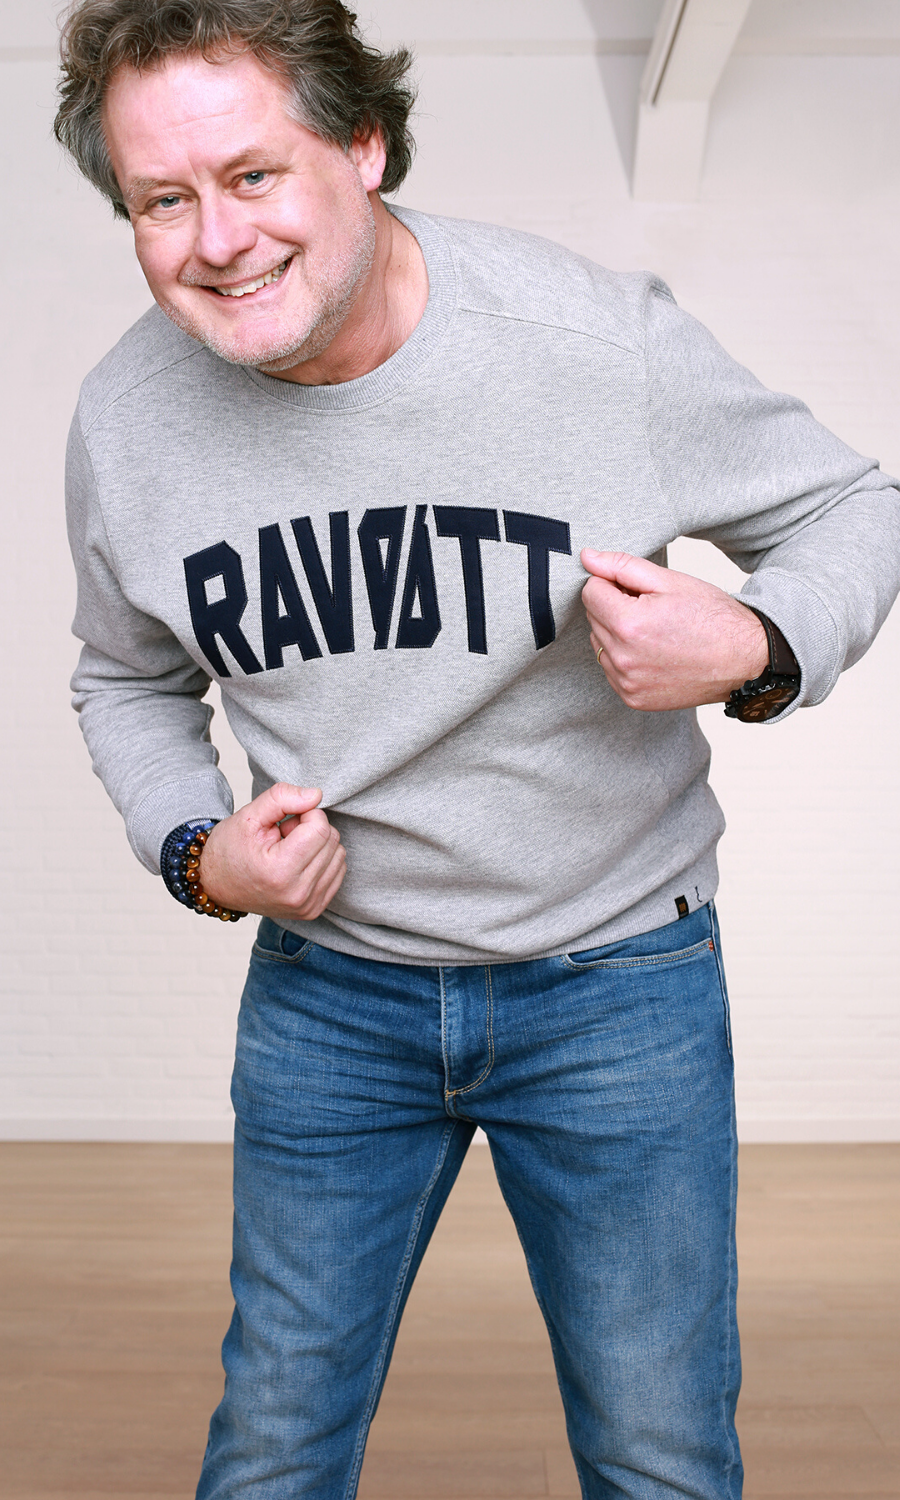 Ravott outfit herenmode